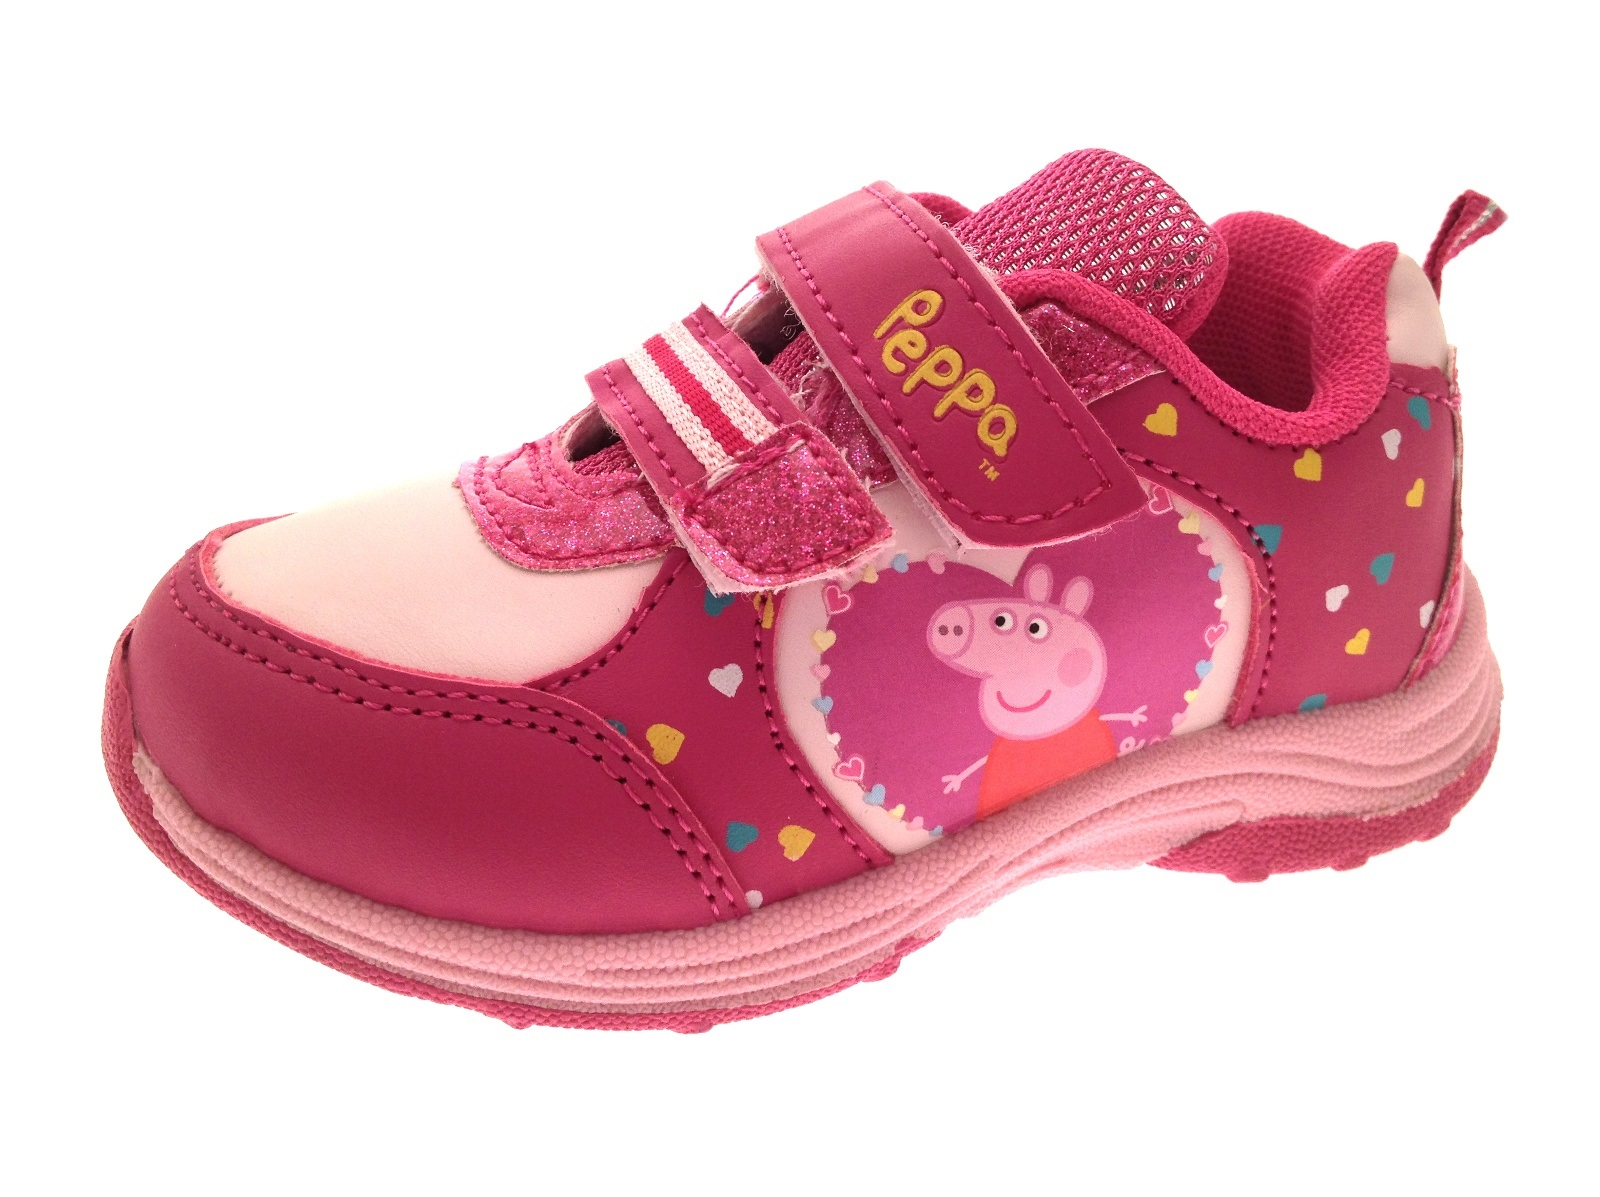 Peppa Pig Shoes Size